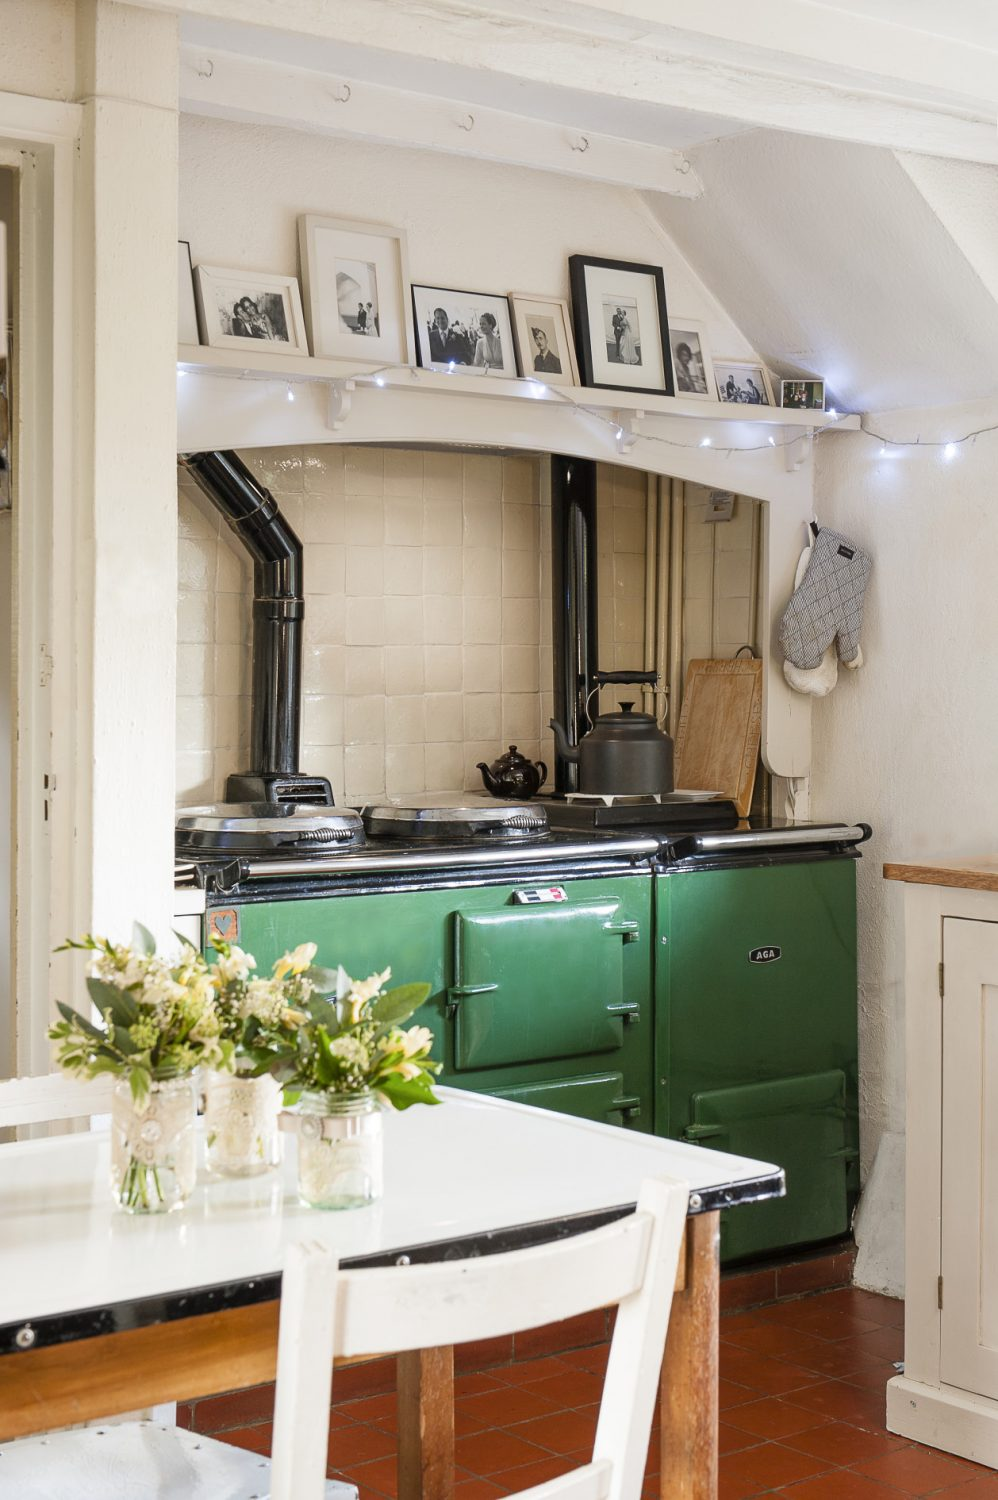 """It took a while for Roni to become accustomed to life with an Aga: """"There were a few Sunday roasts that took five hours but I've finally got the hang of it and wouldn't change it for the world."""""""